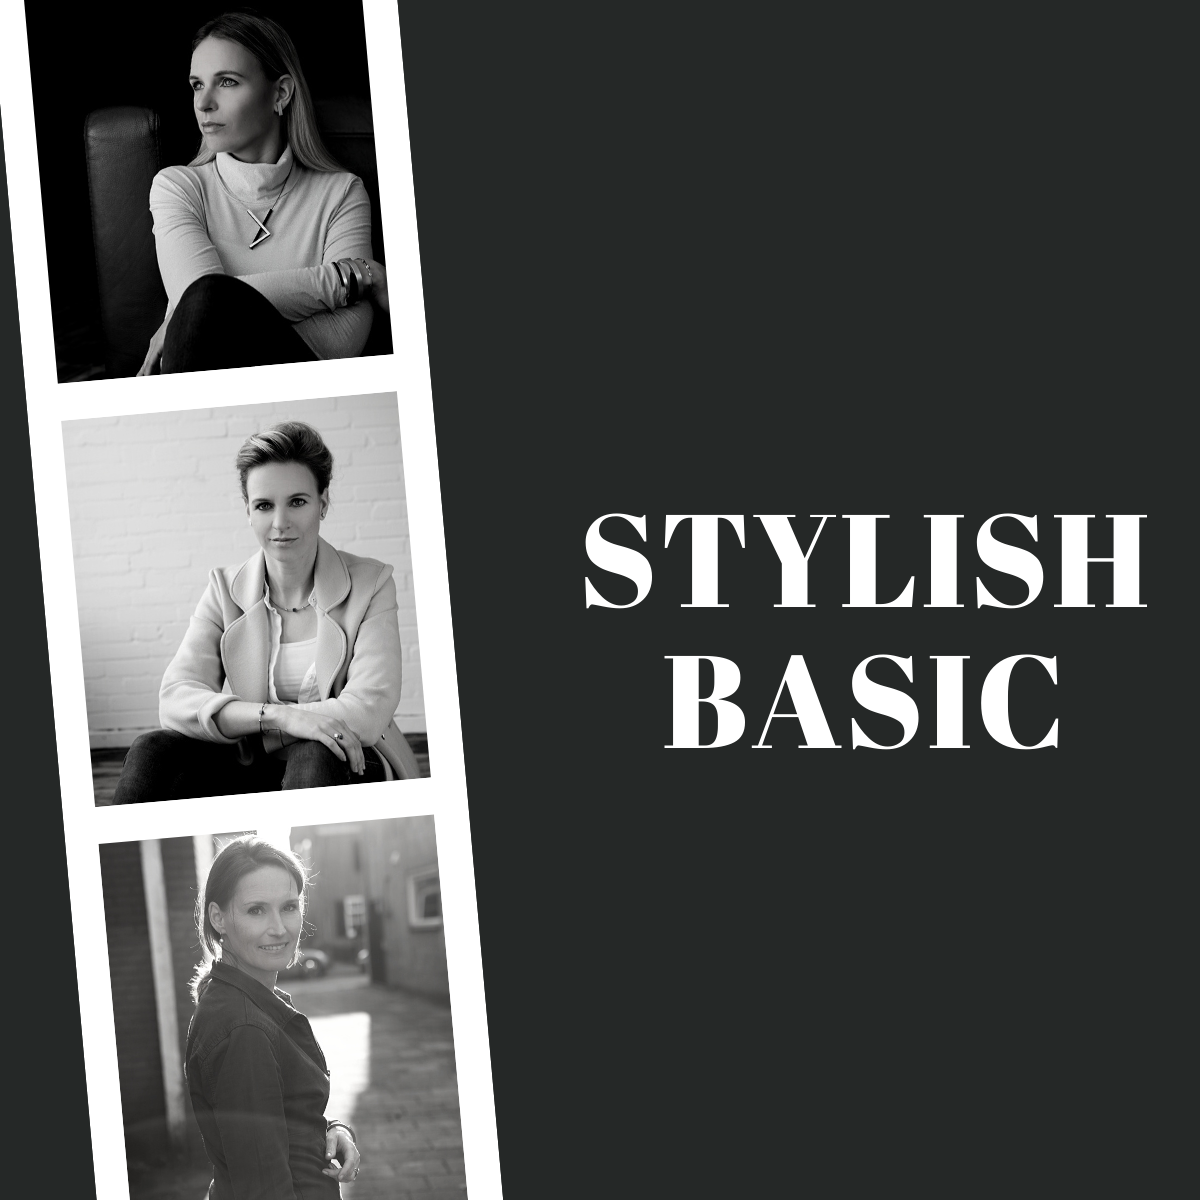 Stylish Basic